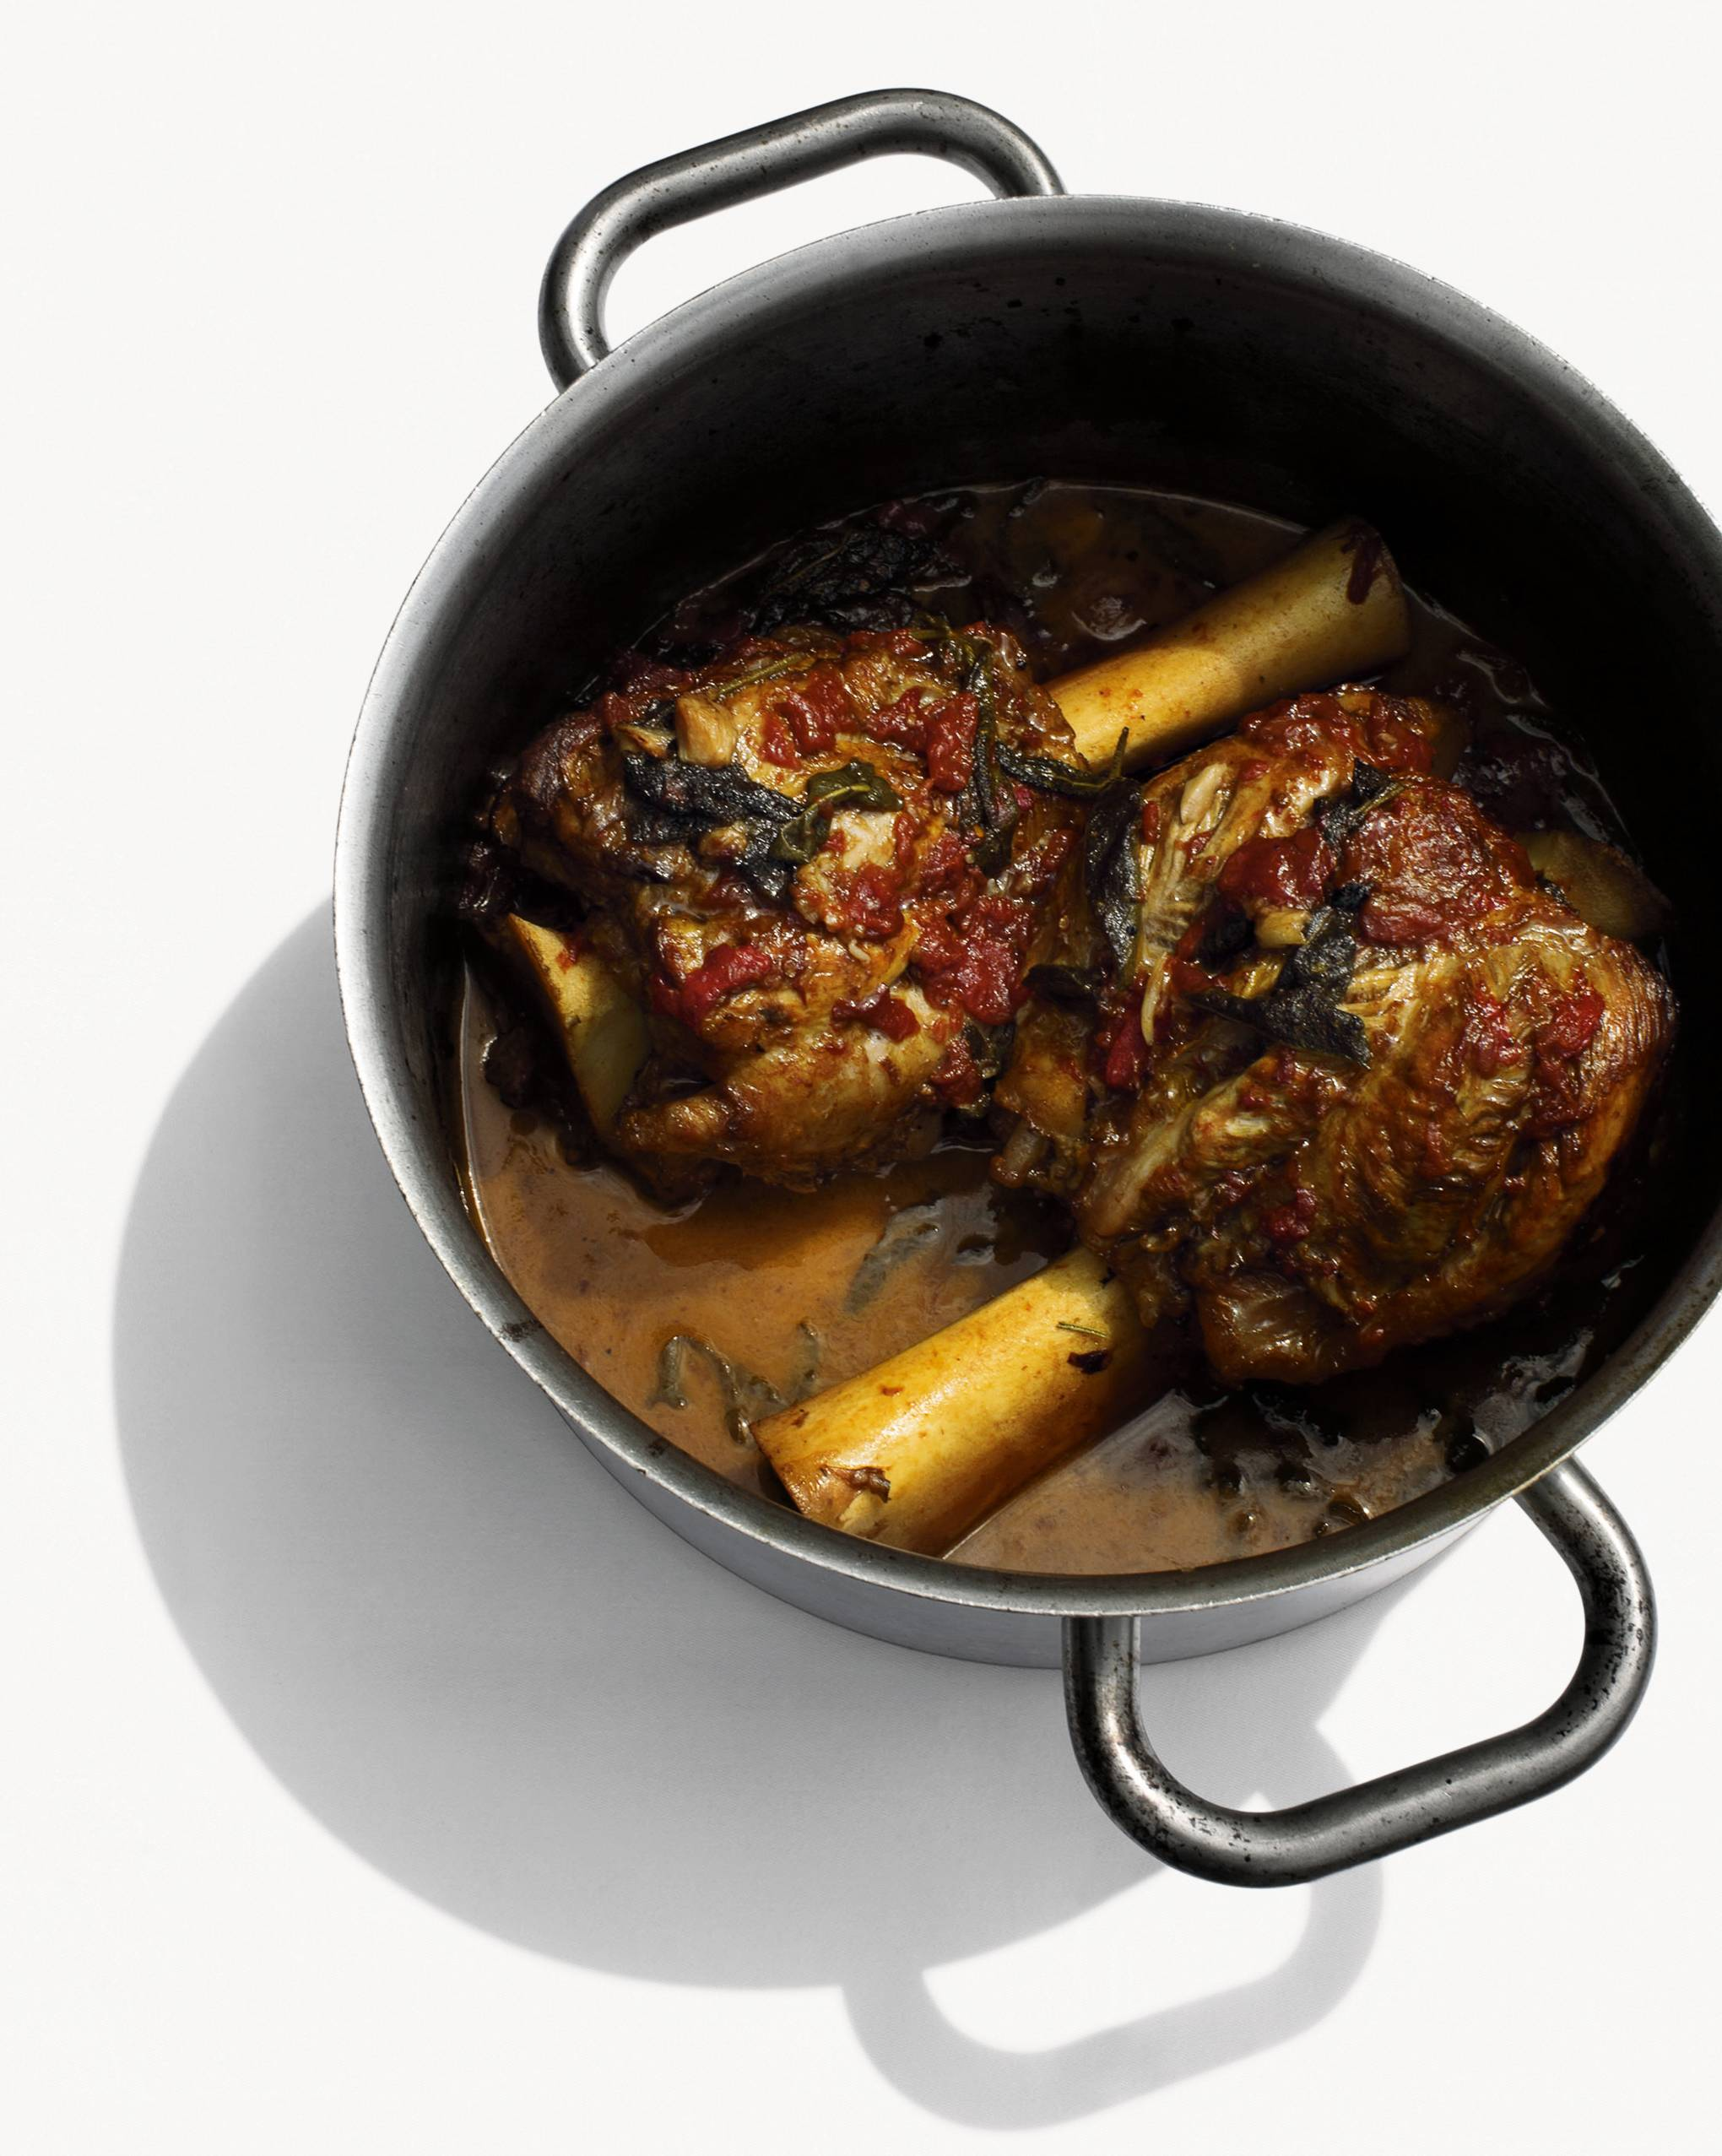 Slow cooked veal recipe from the River Cafe cookbook - slow cooker ...